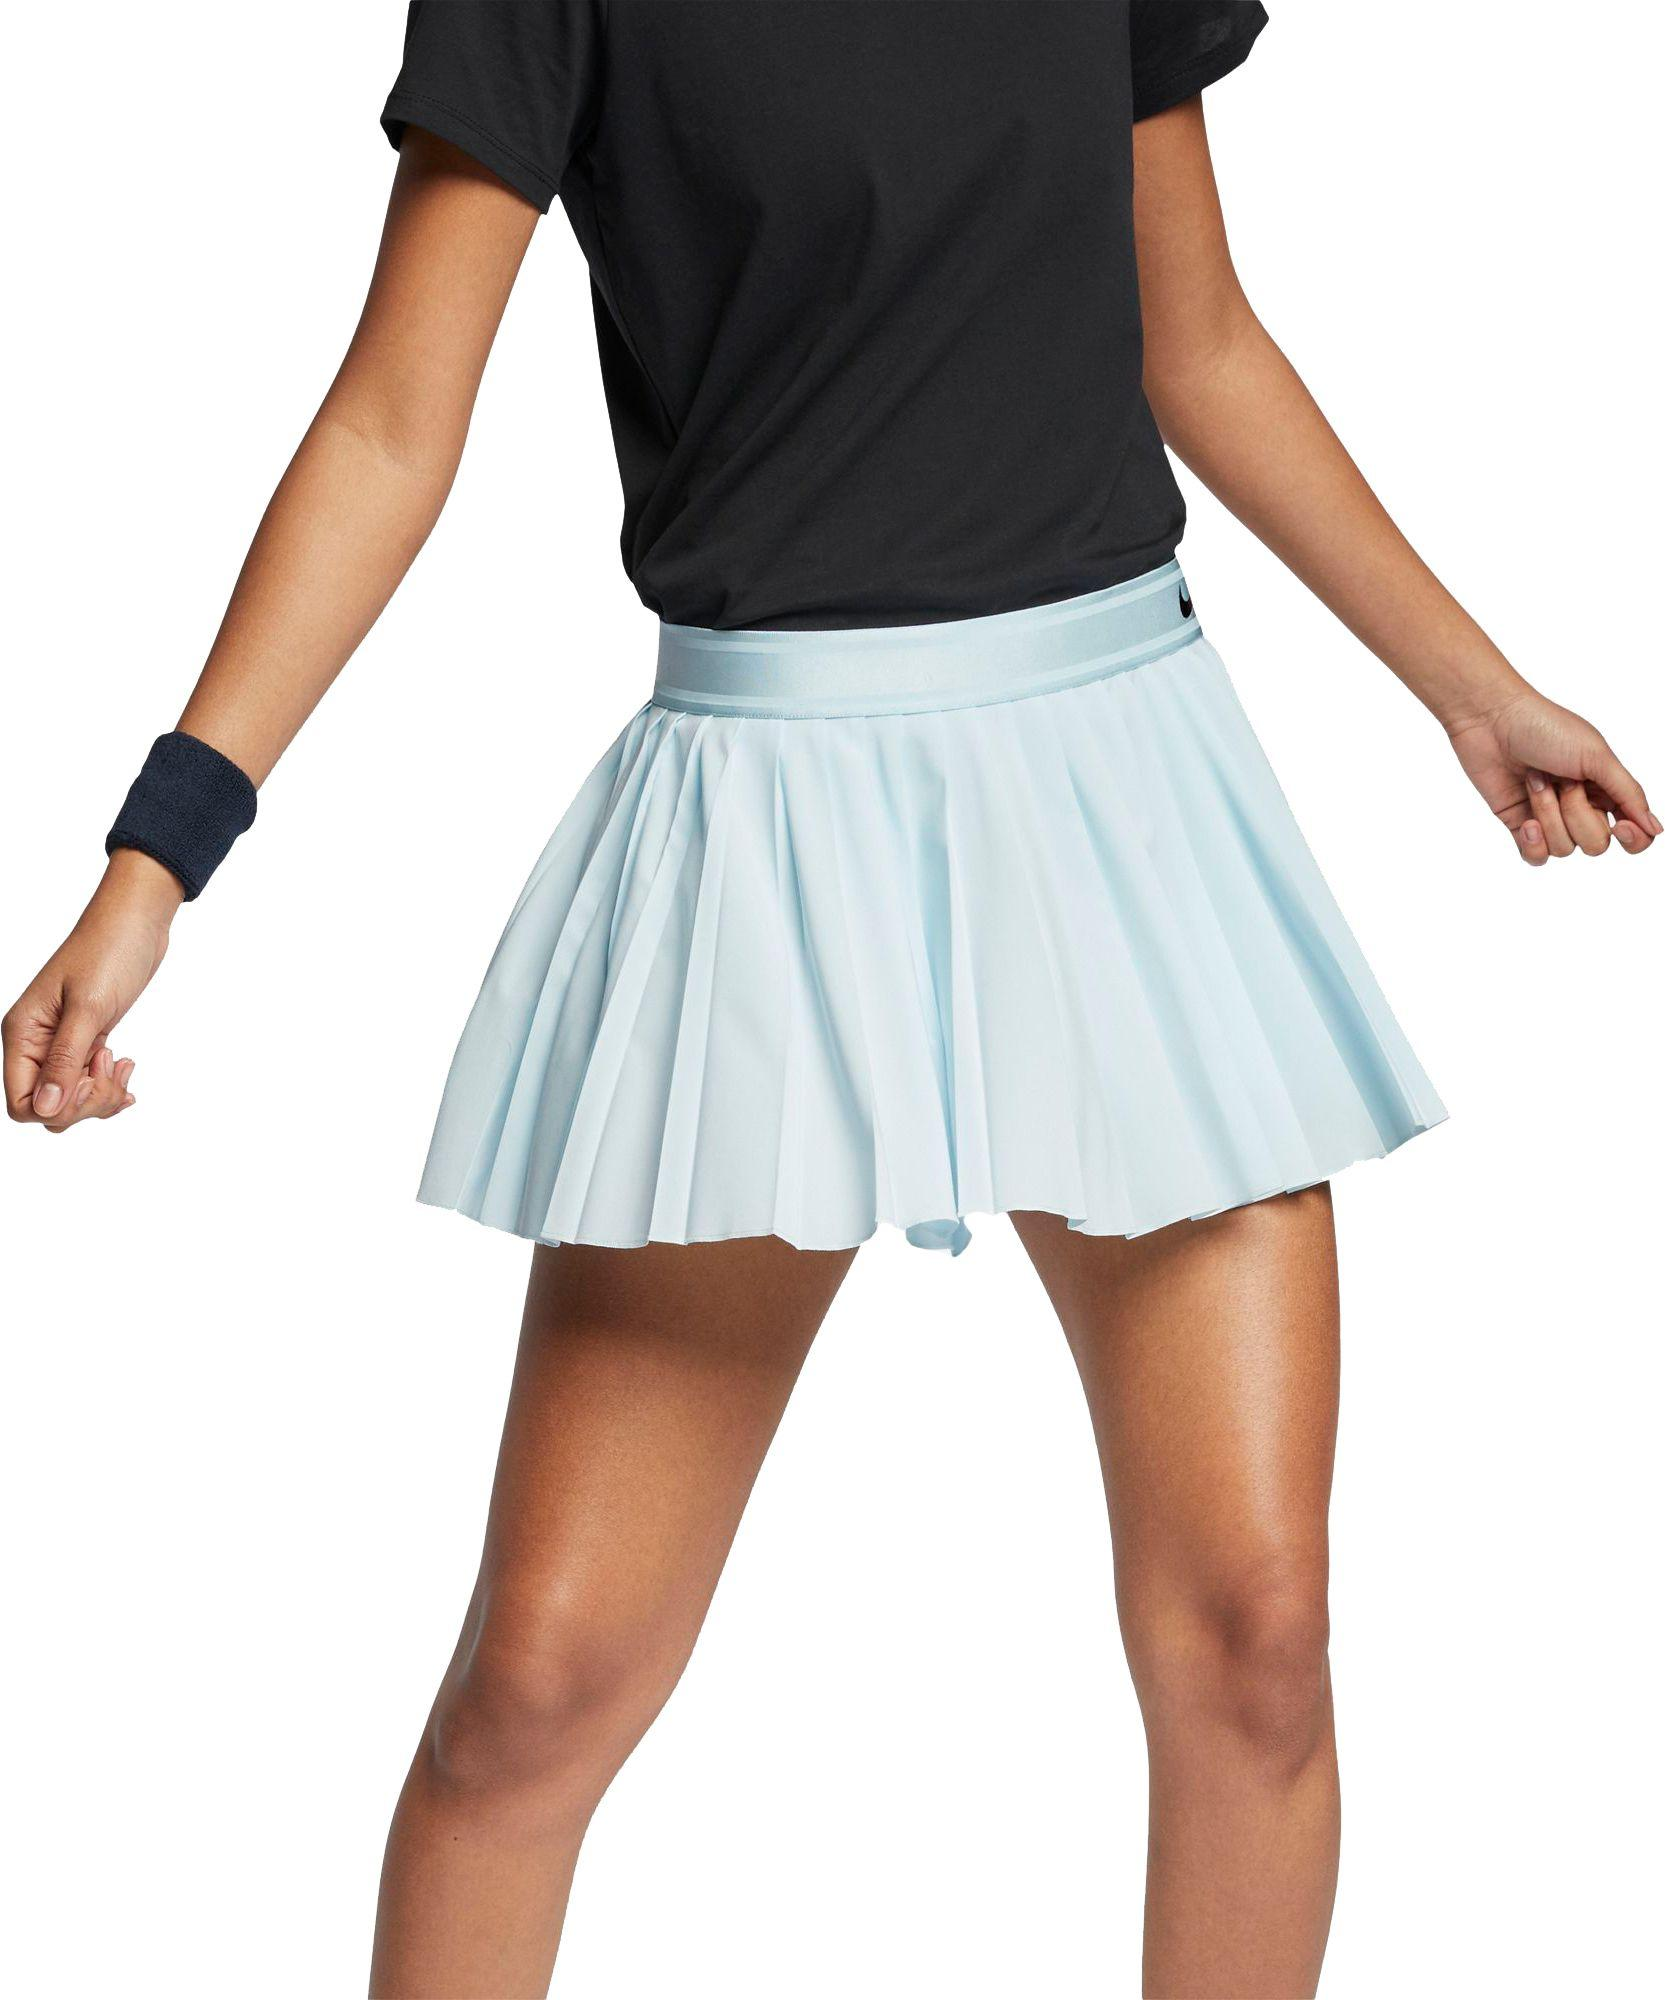 d58d64511 Lyst - Nike Court Victory Tennis Skirt in Blue